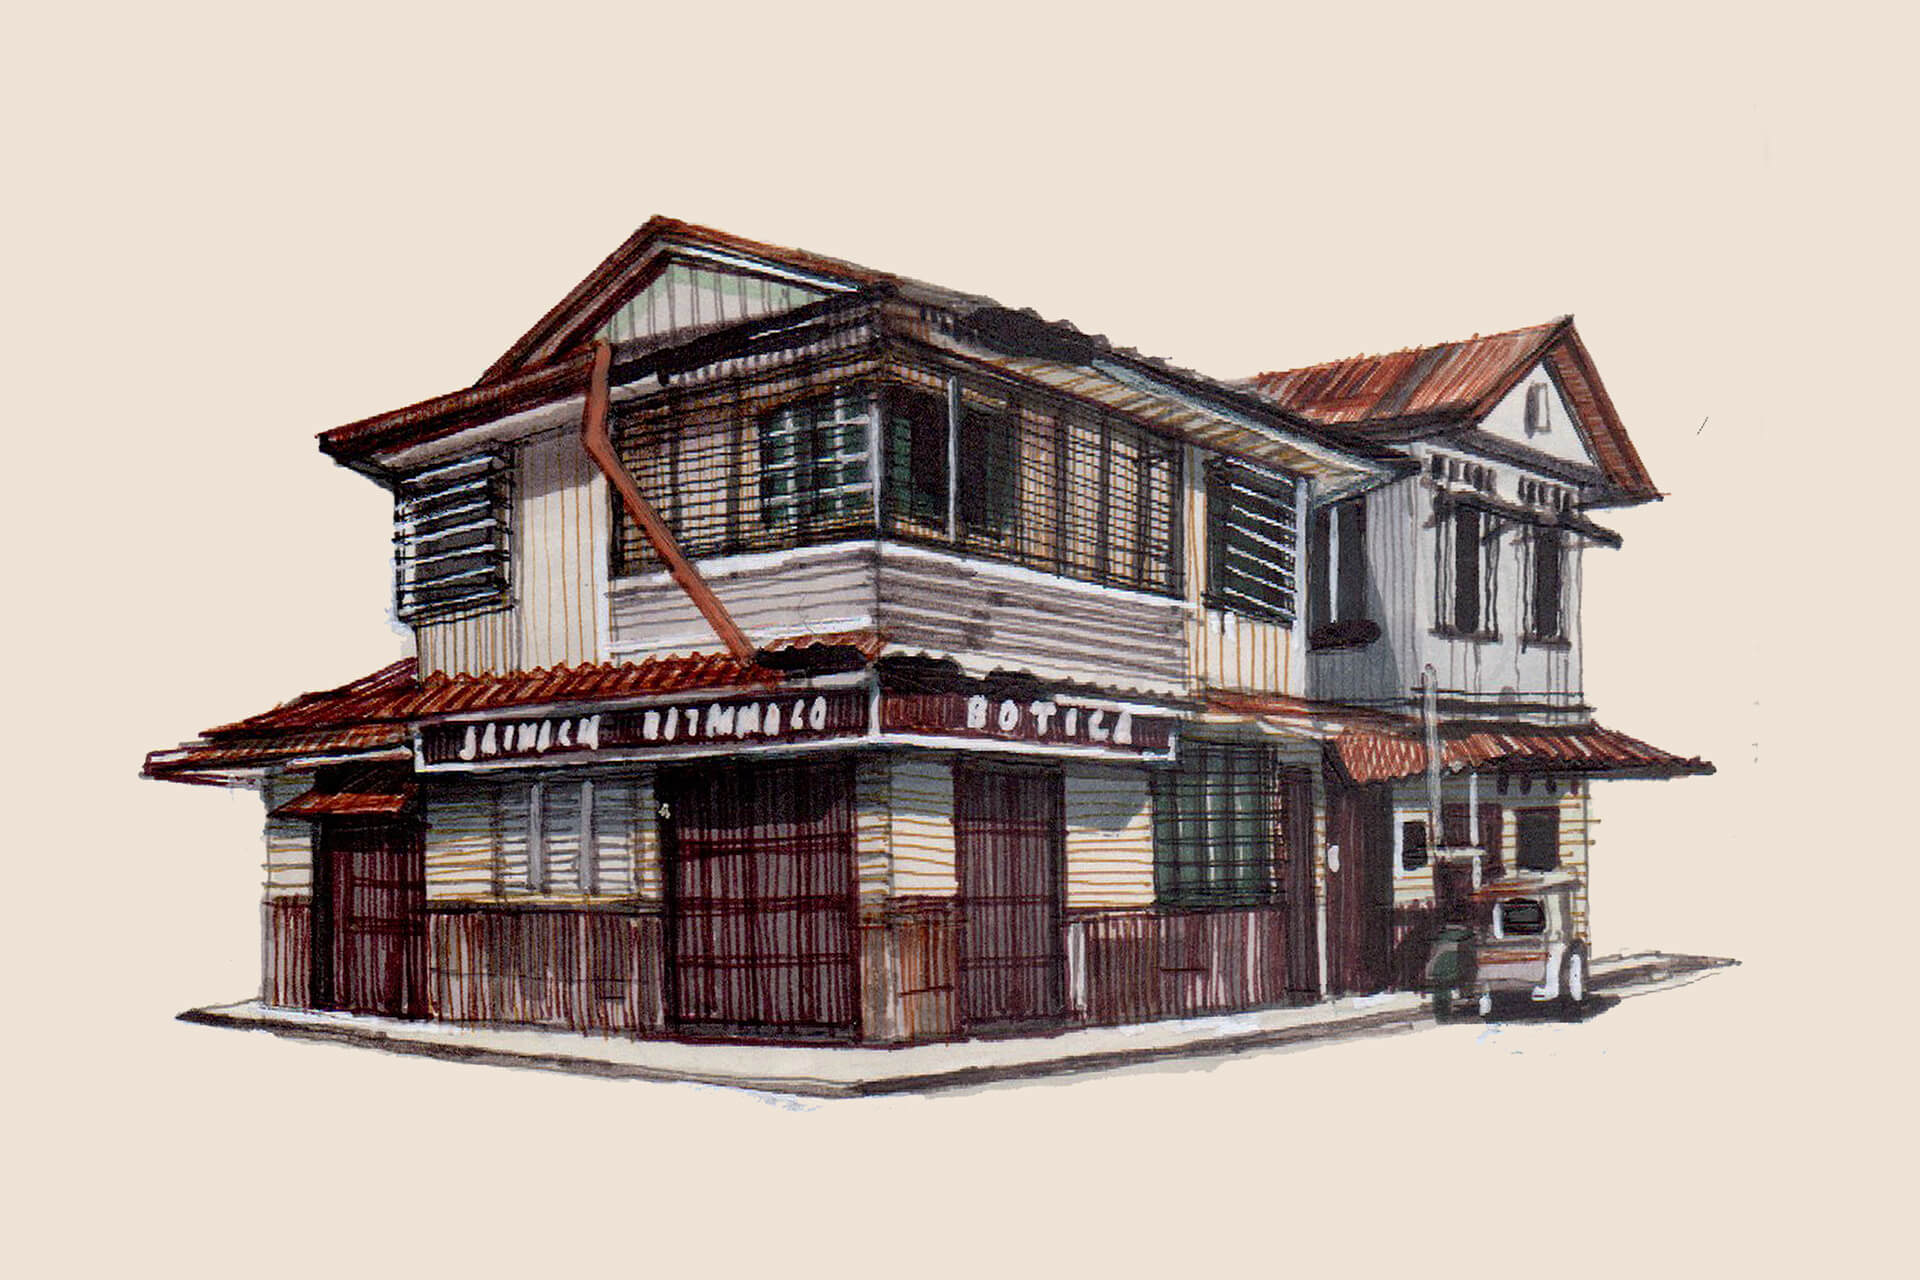 On the eastern side of Oriental Mindoro sits Pola: a small, coastal town full of ancestral homes. Illustration by Rom Cahilo.